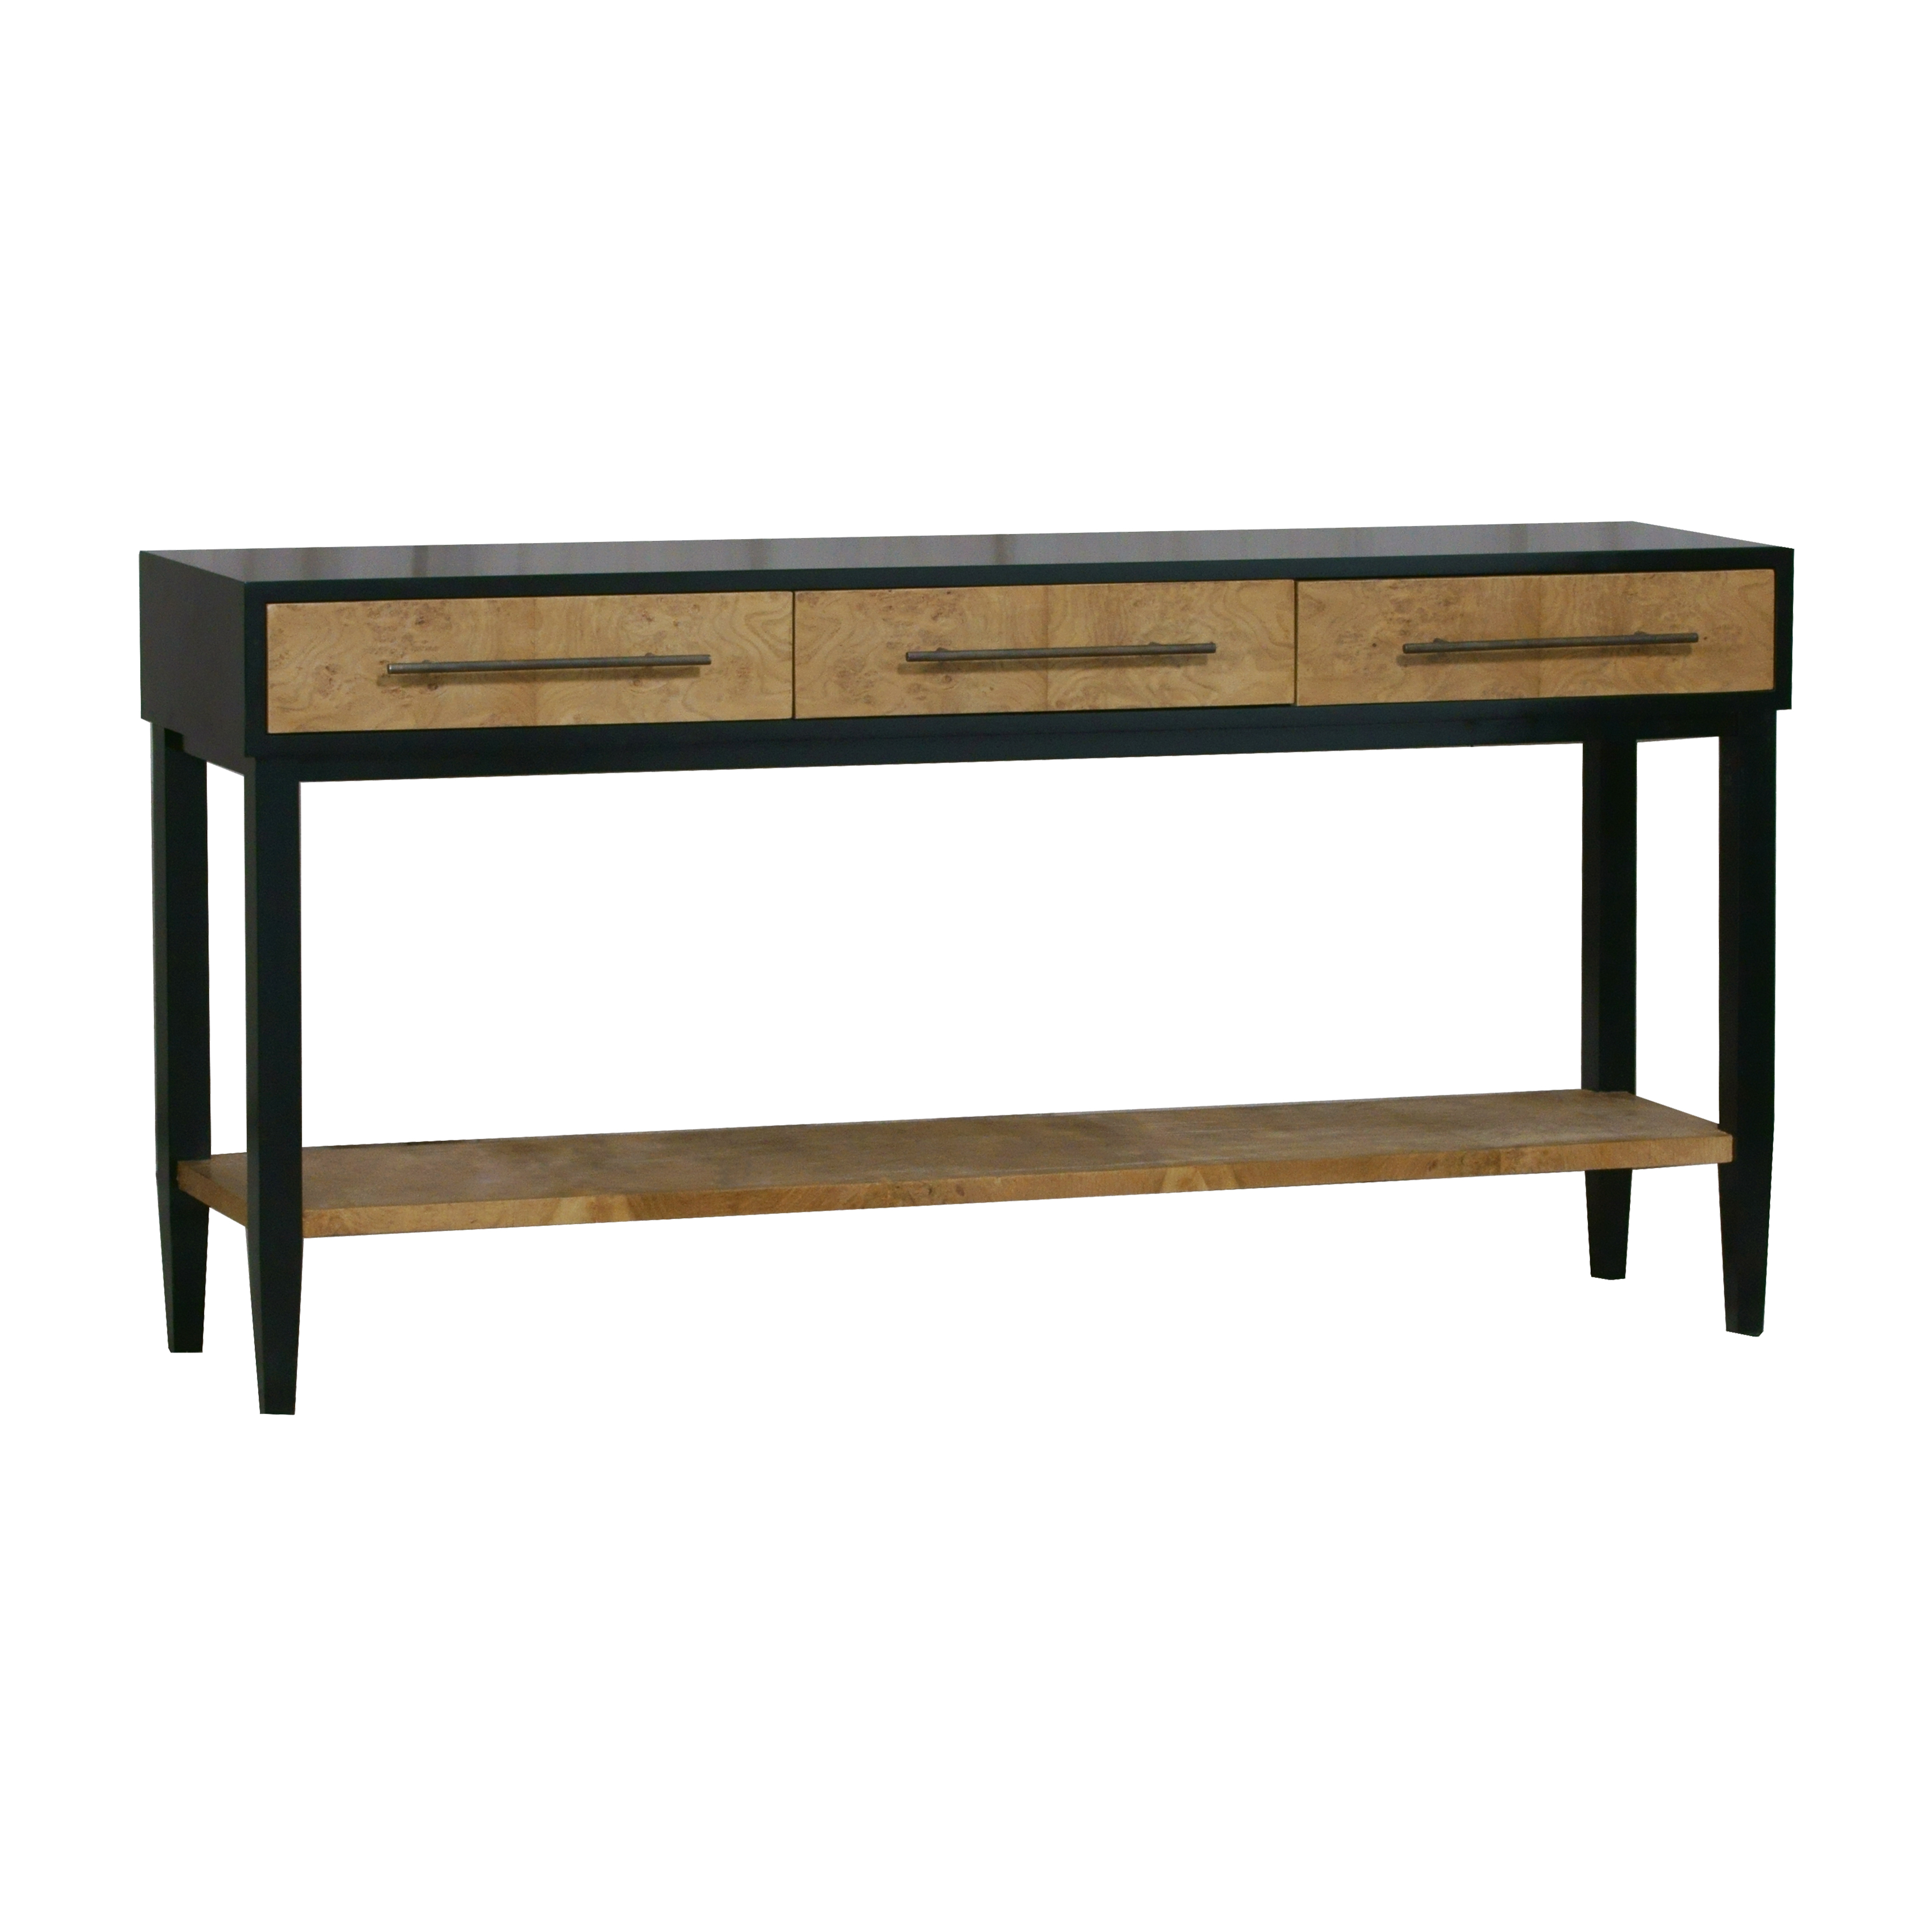 Stein World Marc Console Table